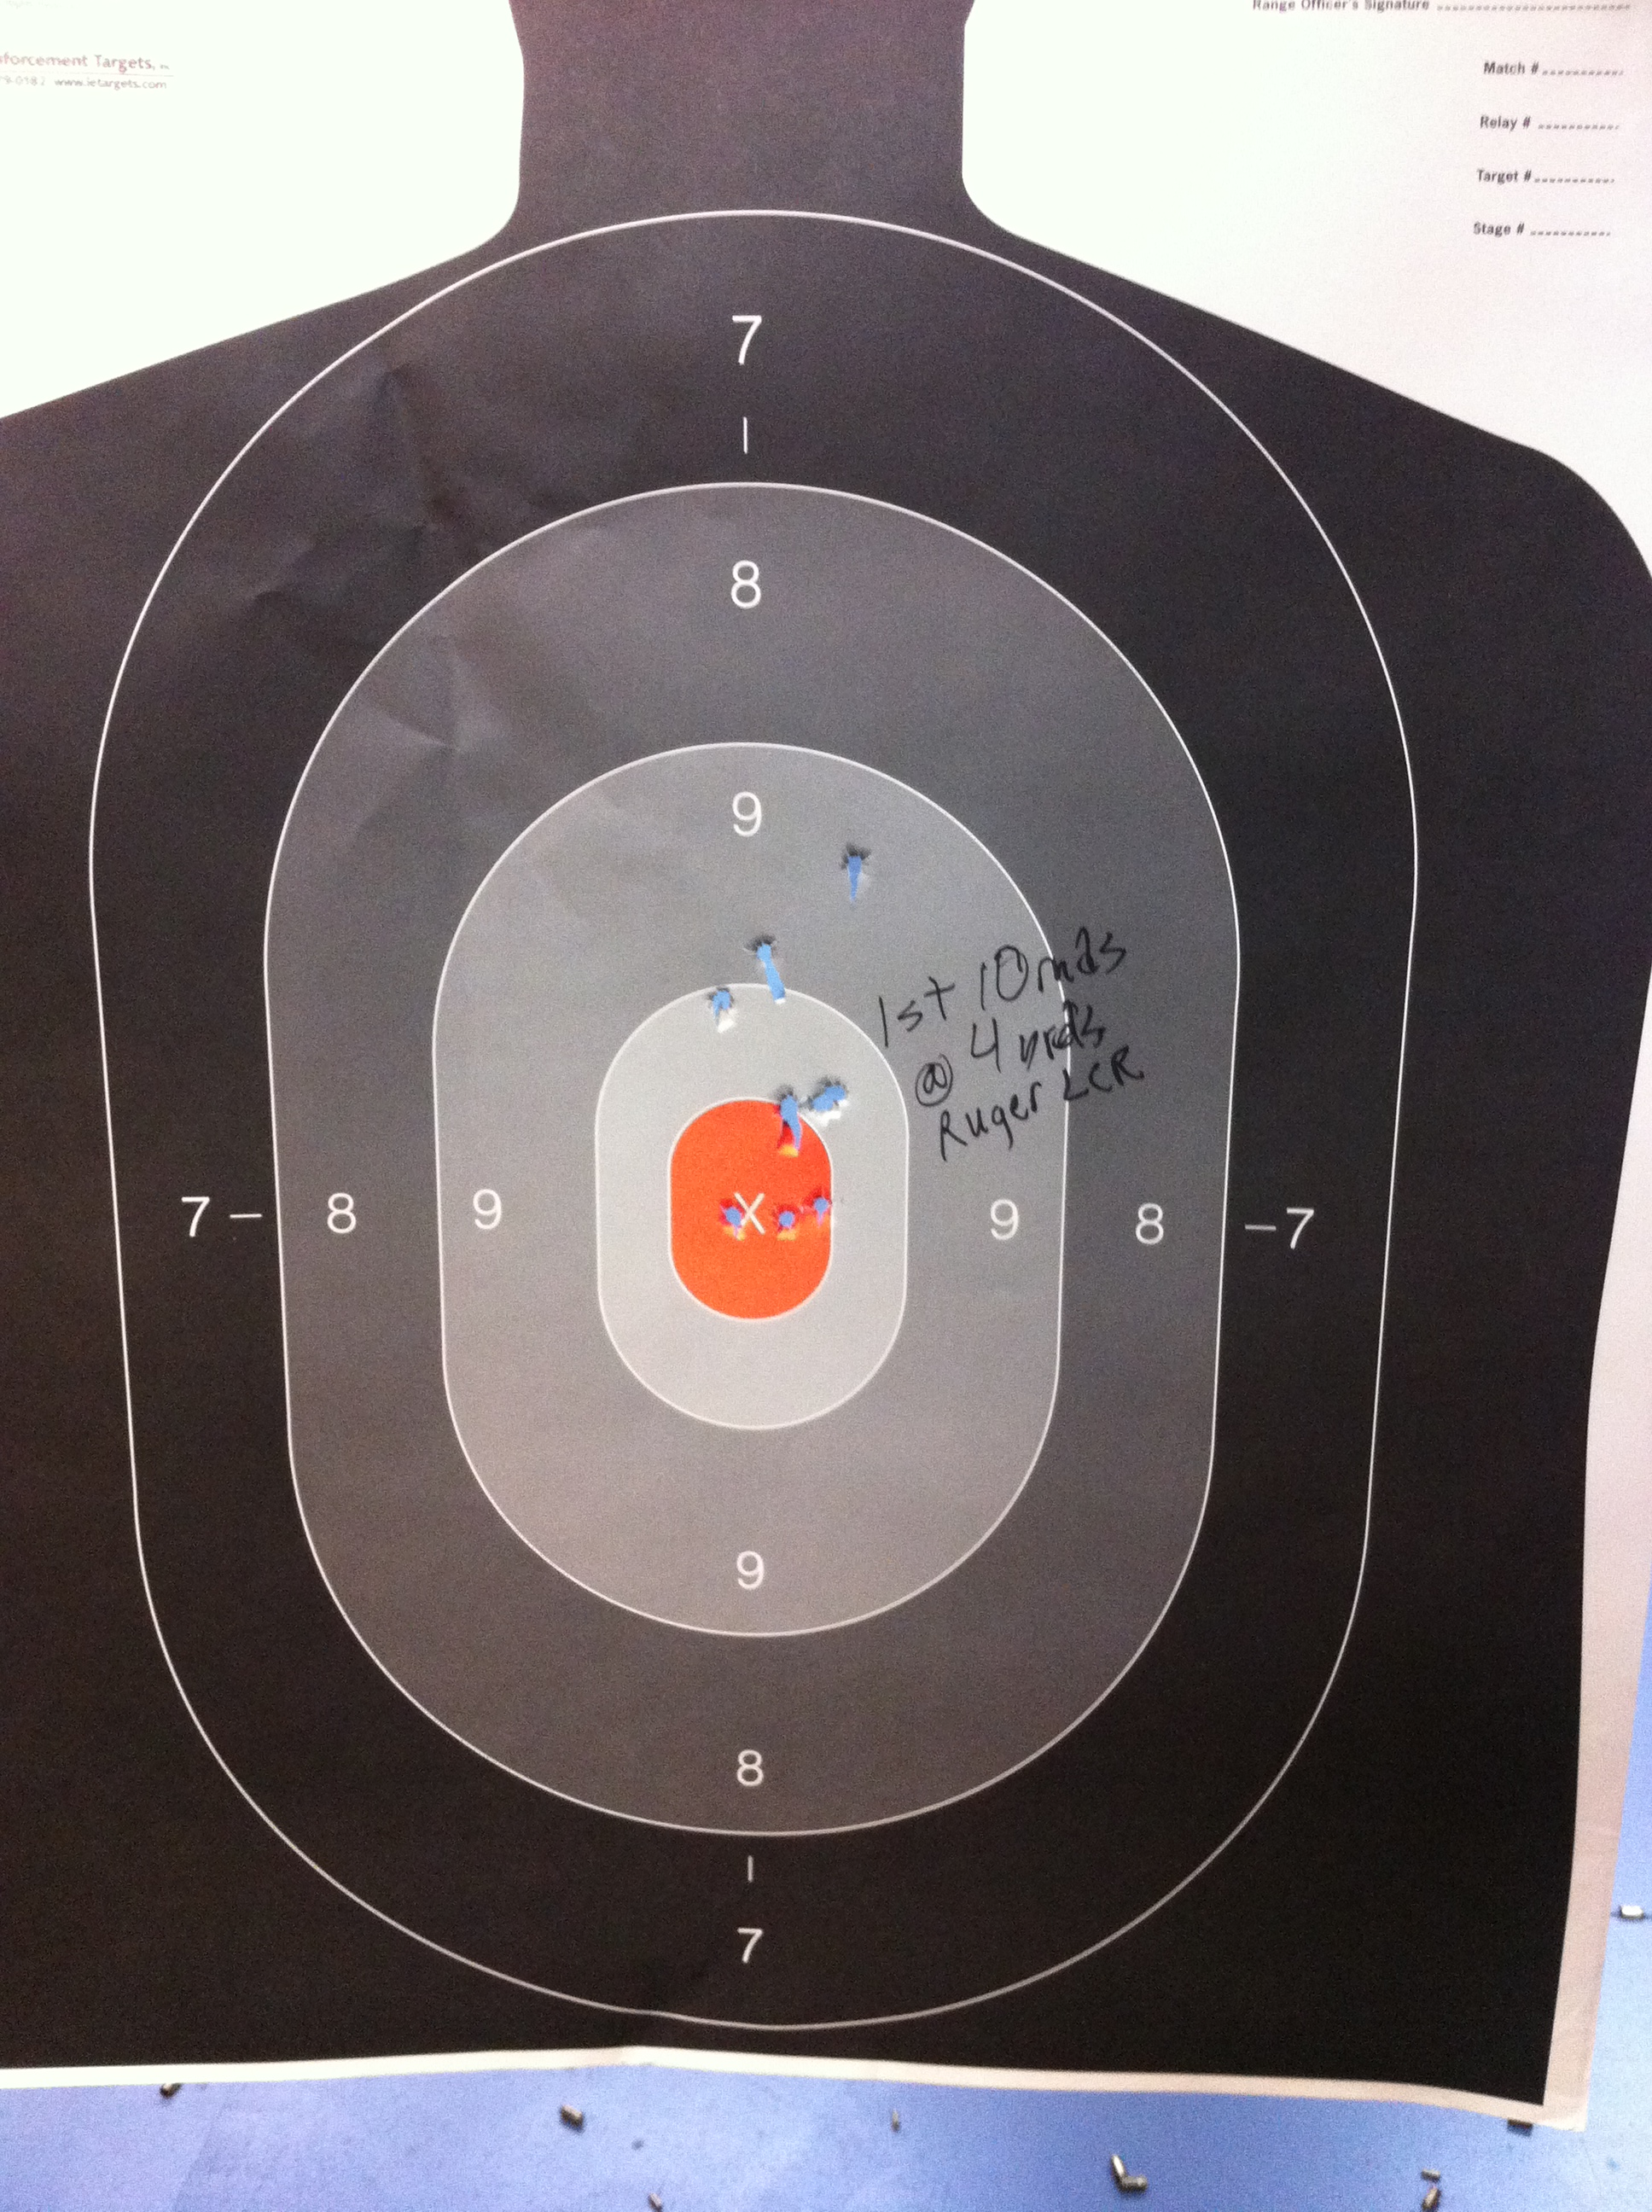 First range trip with a snub nose - new LCR-043.jpg